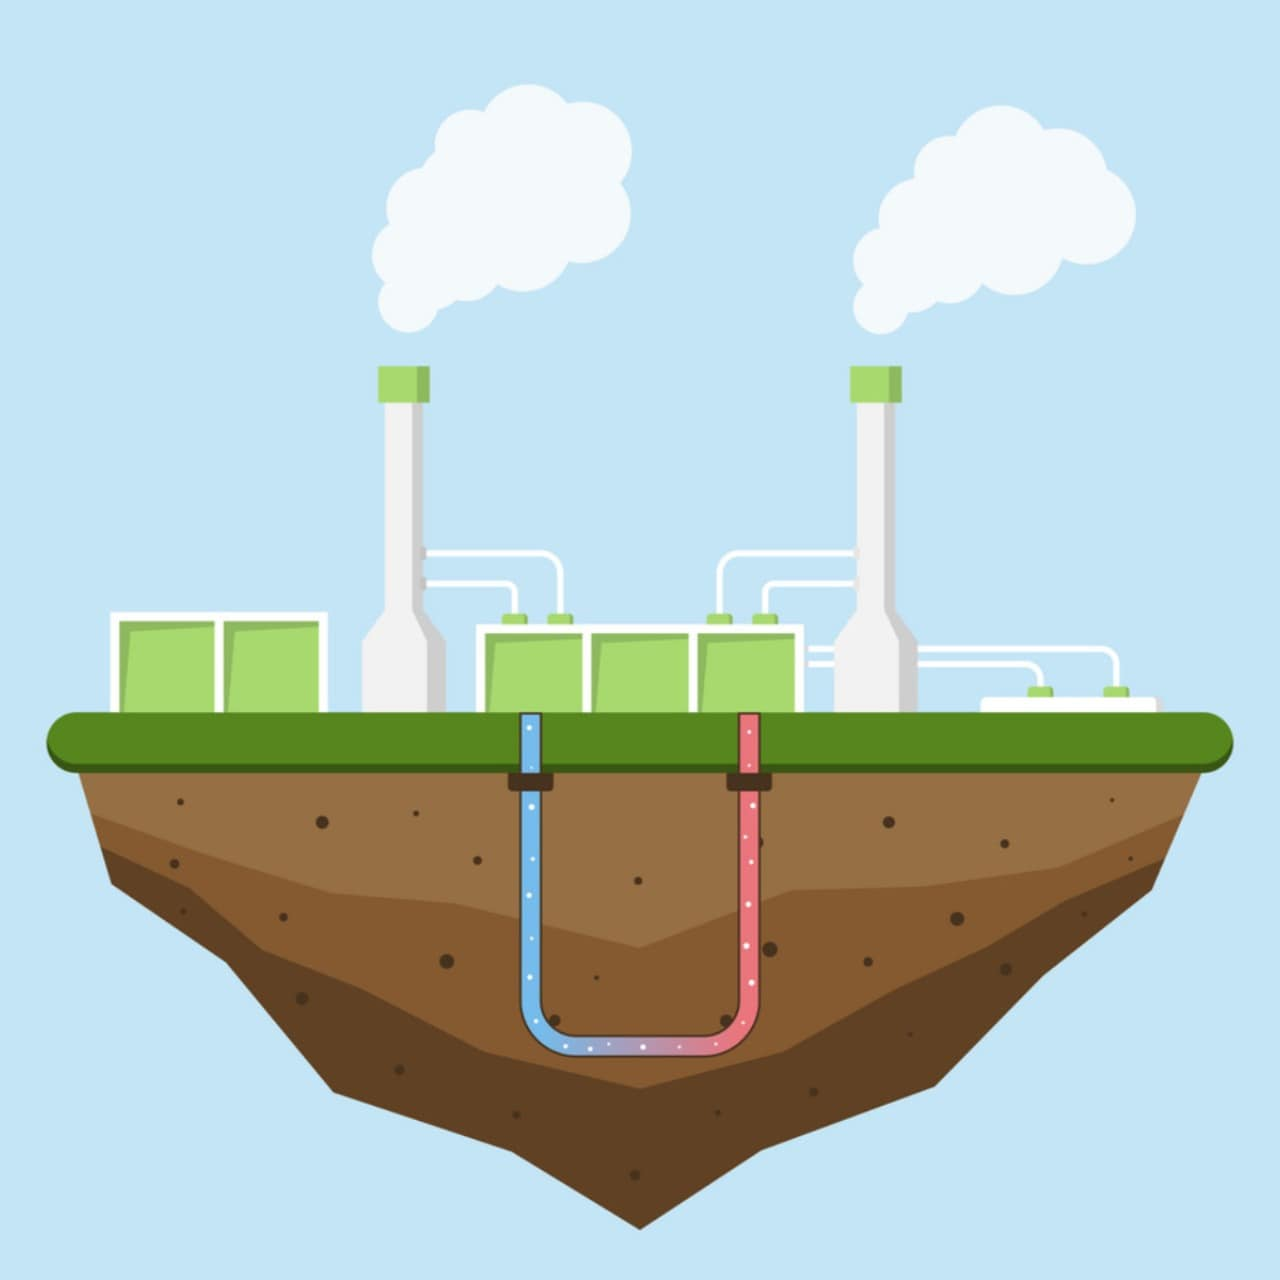 Geothermal plants are a sustainable means of energy production.